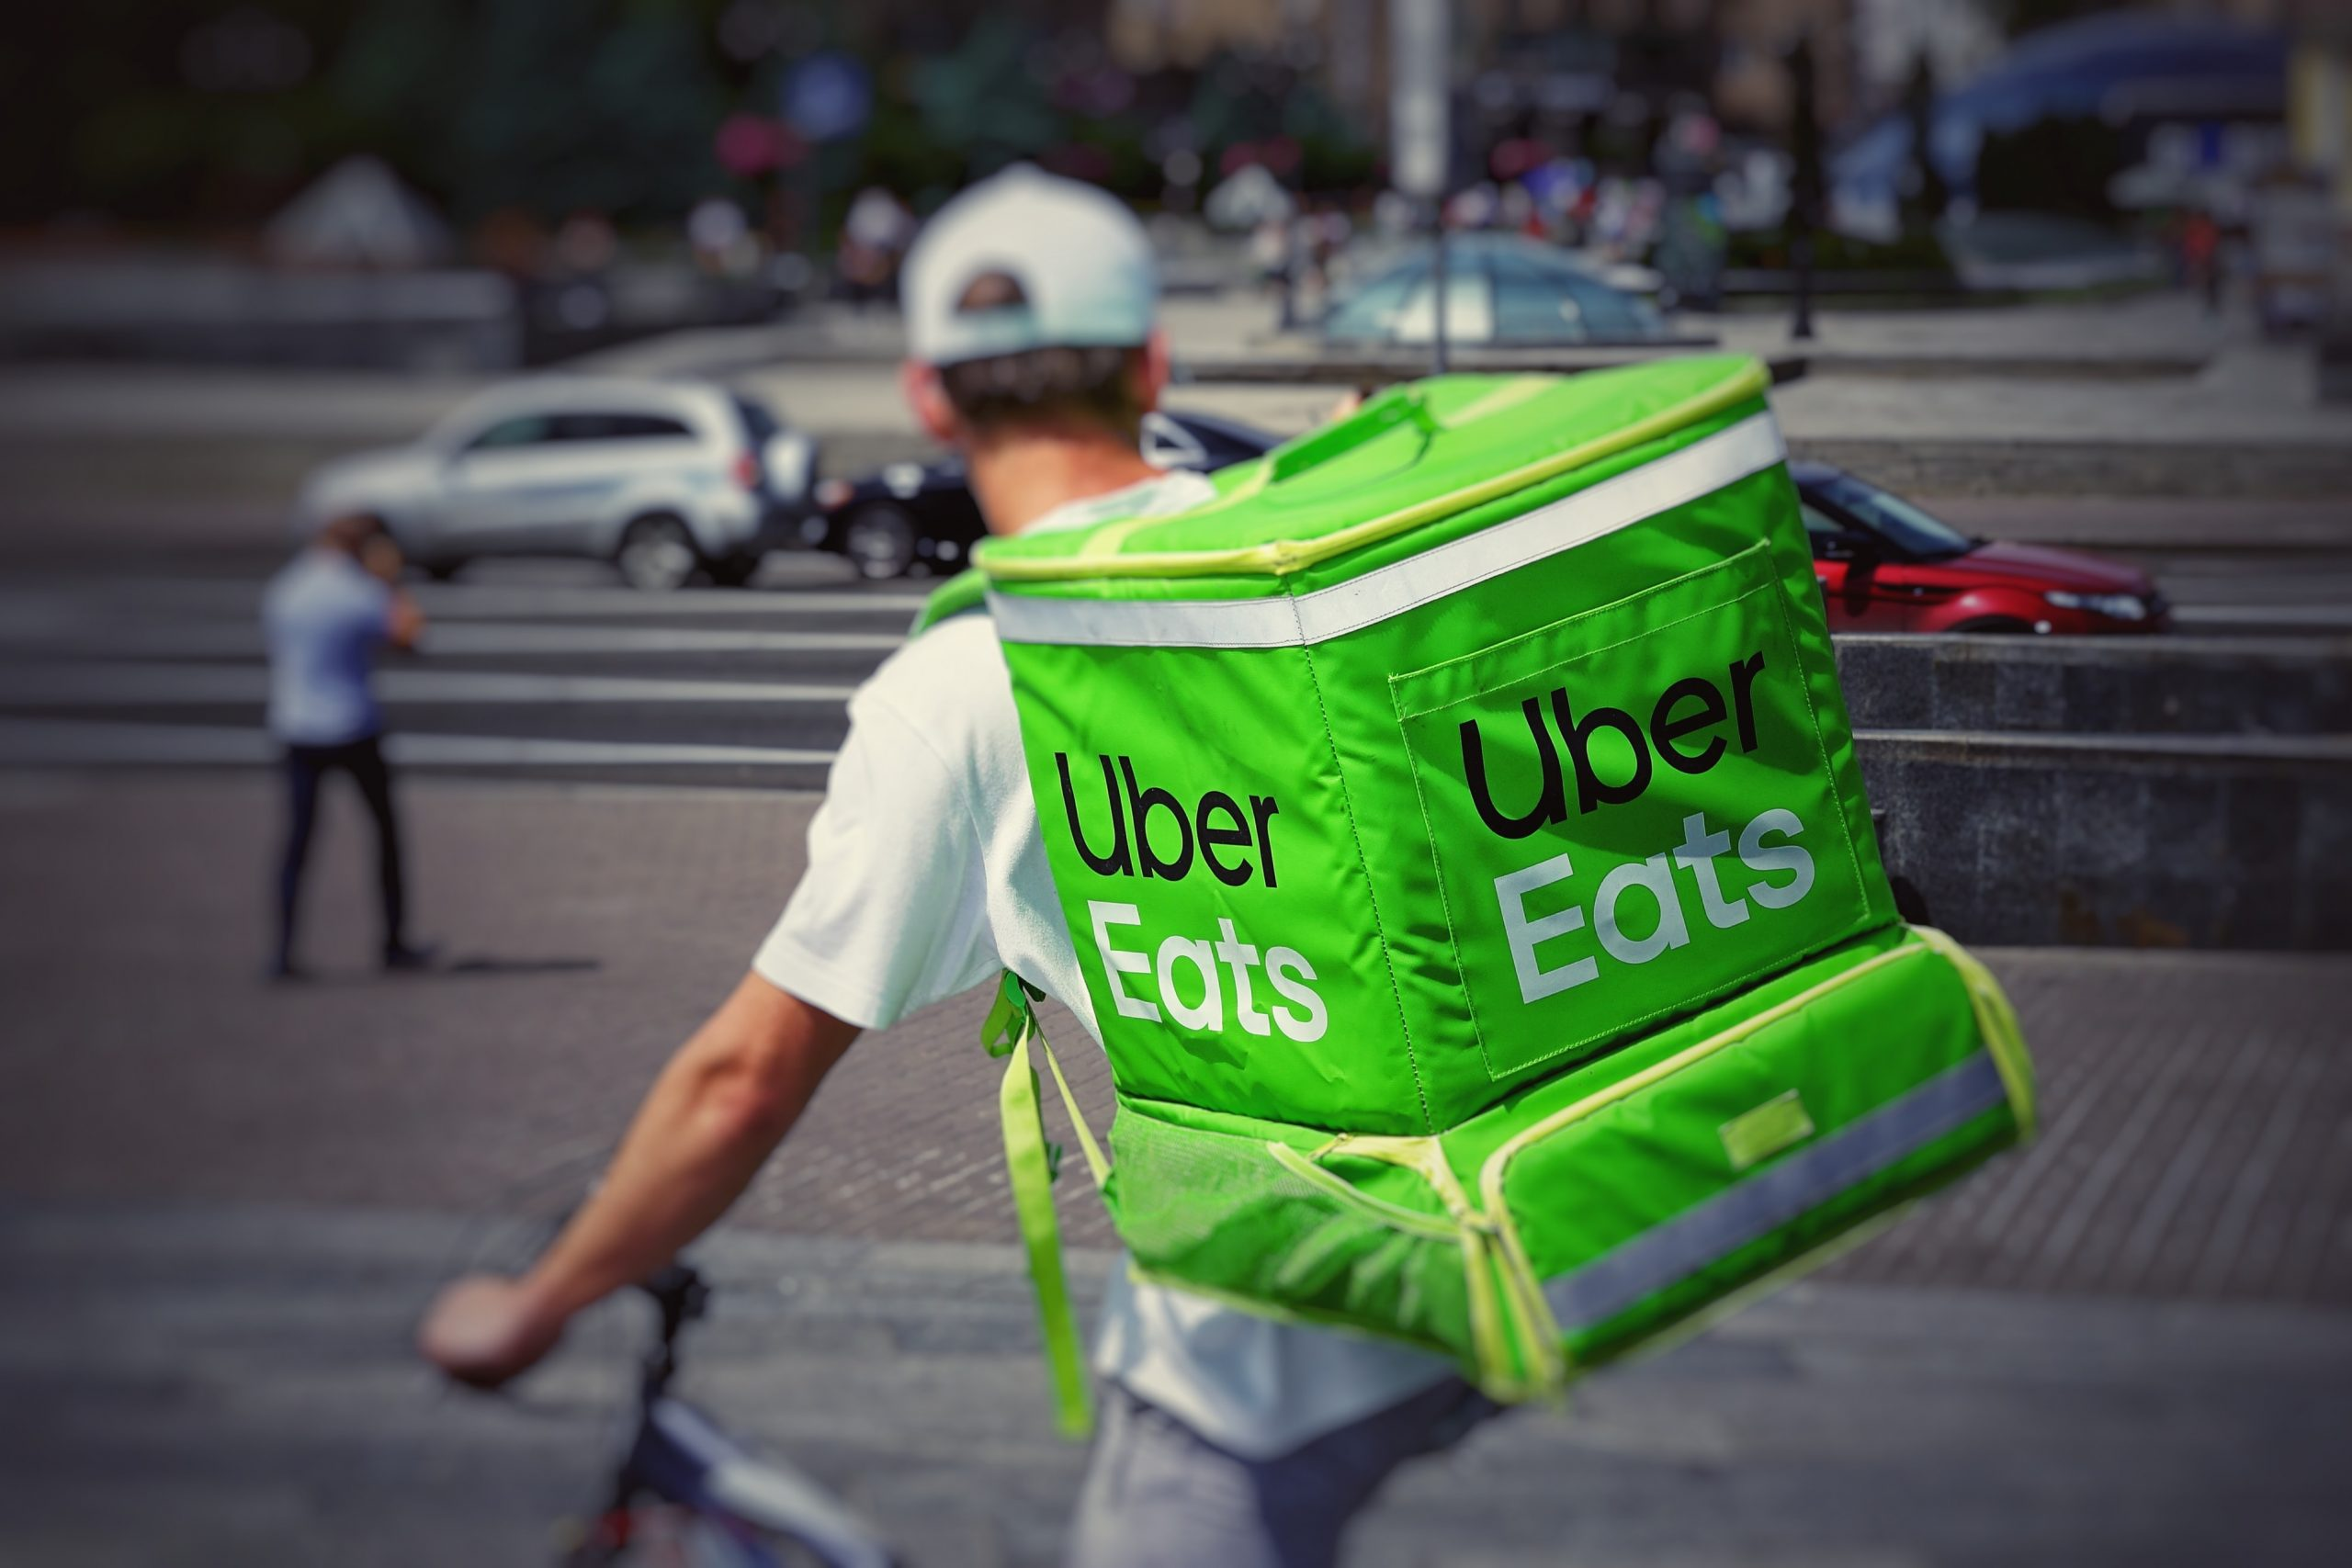 An Uber Eats courier rides a bike on the streets. He is wearing a bright green delivery bag with Uber Eats' logo on it.